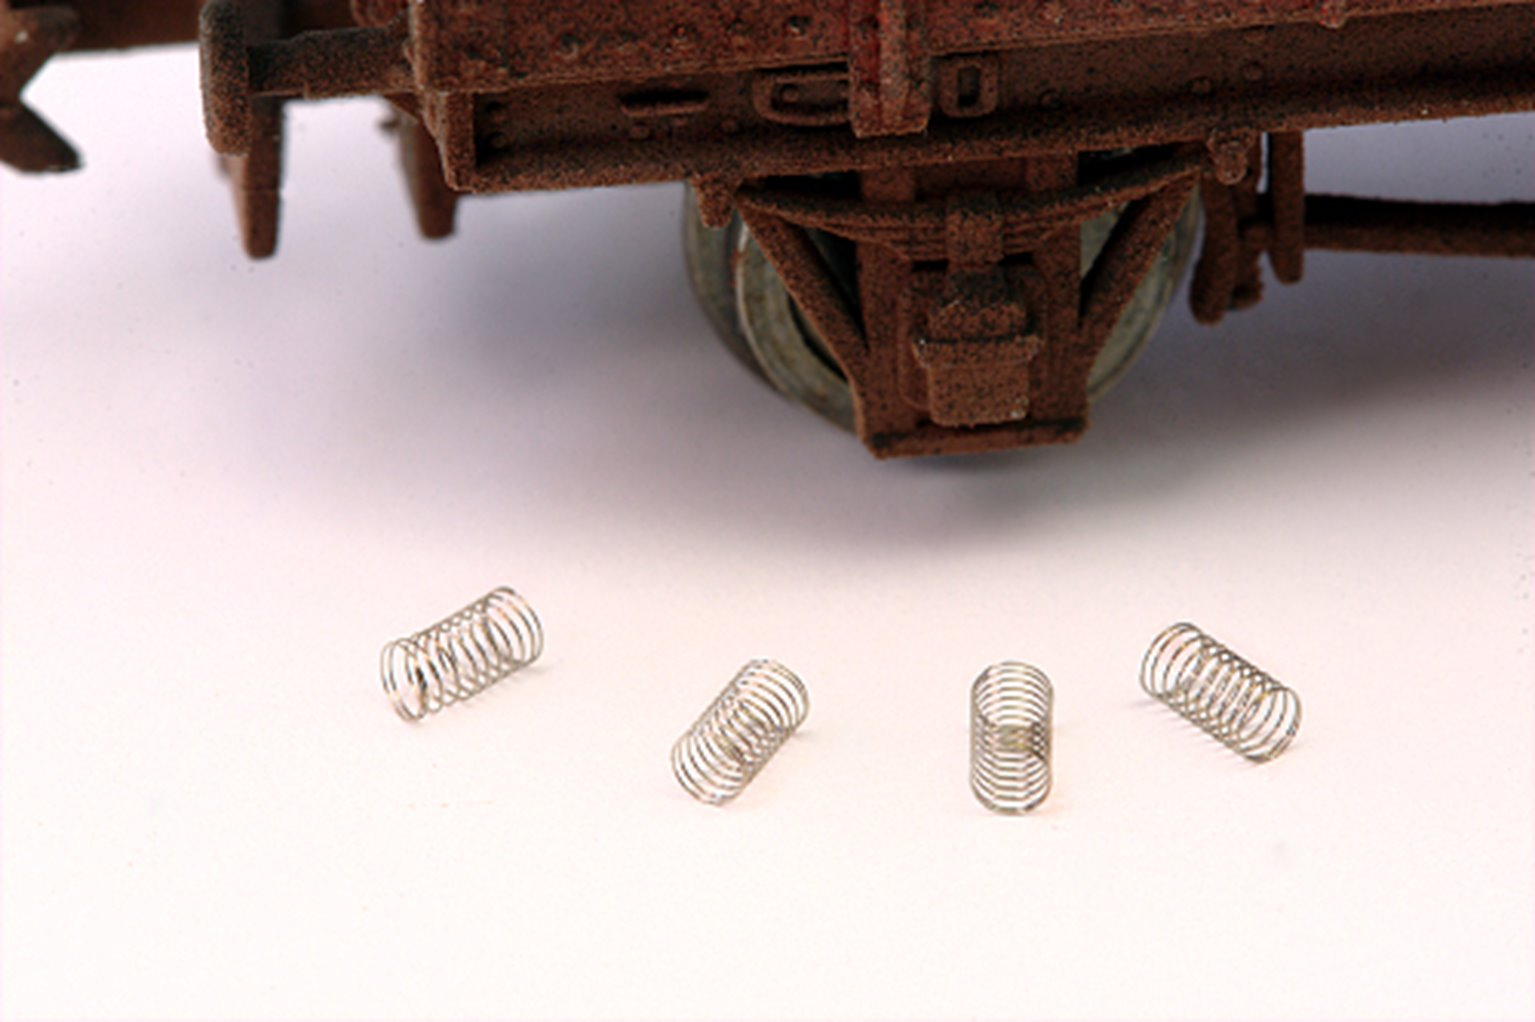 Spring for Magnetic Couplings - Pack of 4